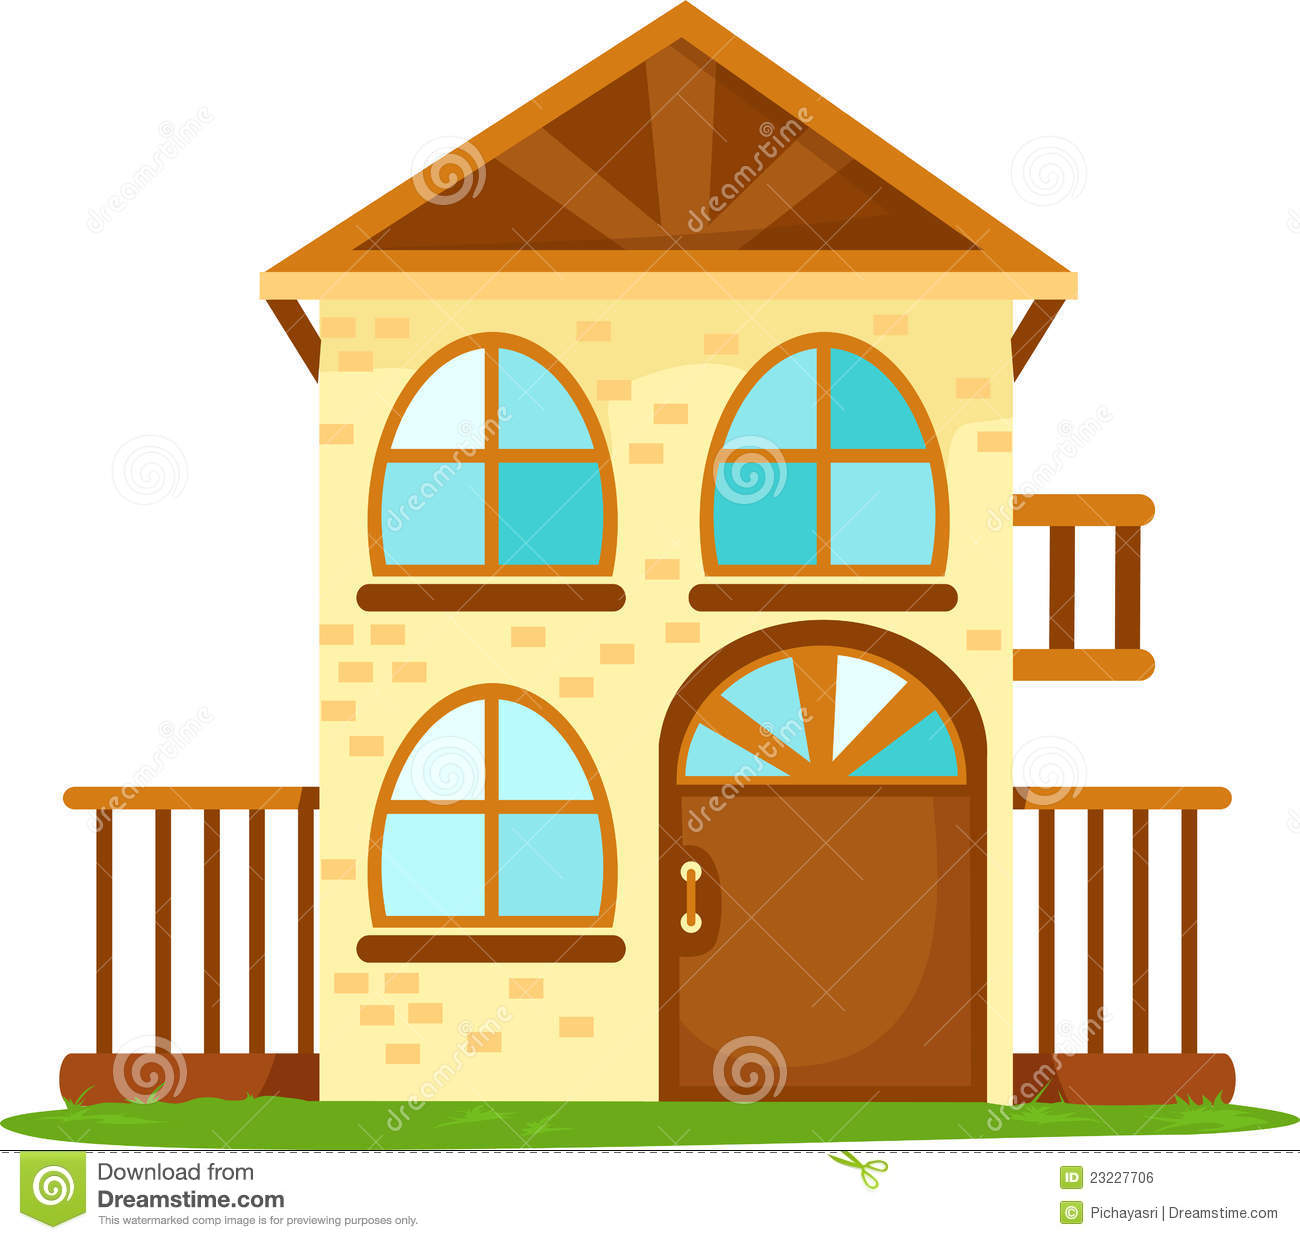 Draw House Plans Cartoon House Royalty Free Stock Image Image 23227706